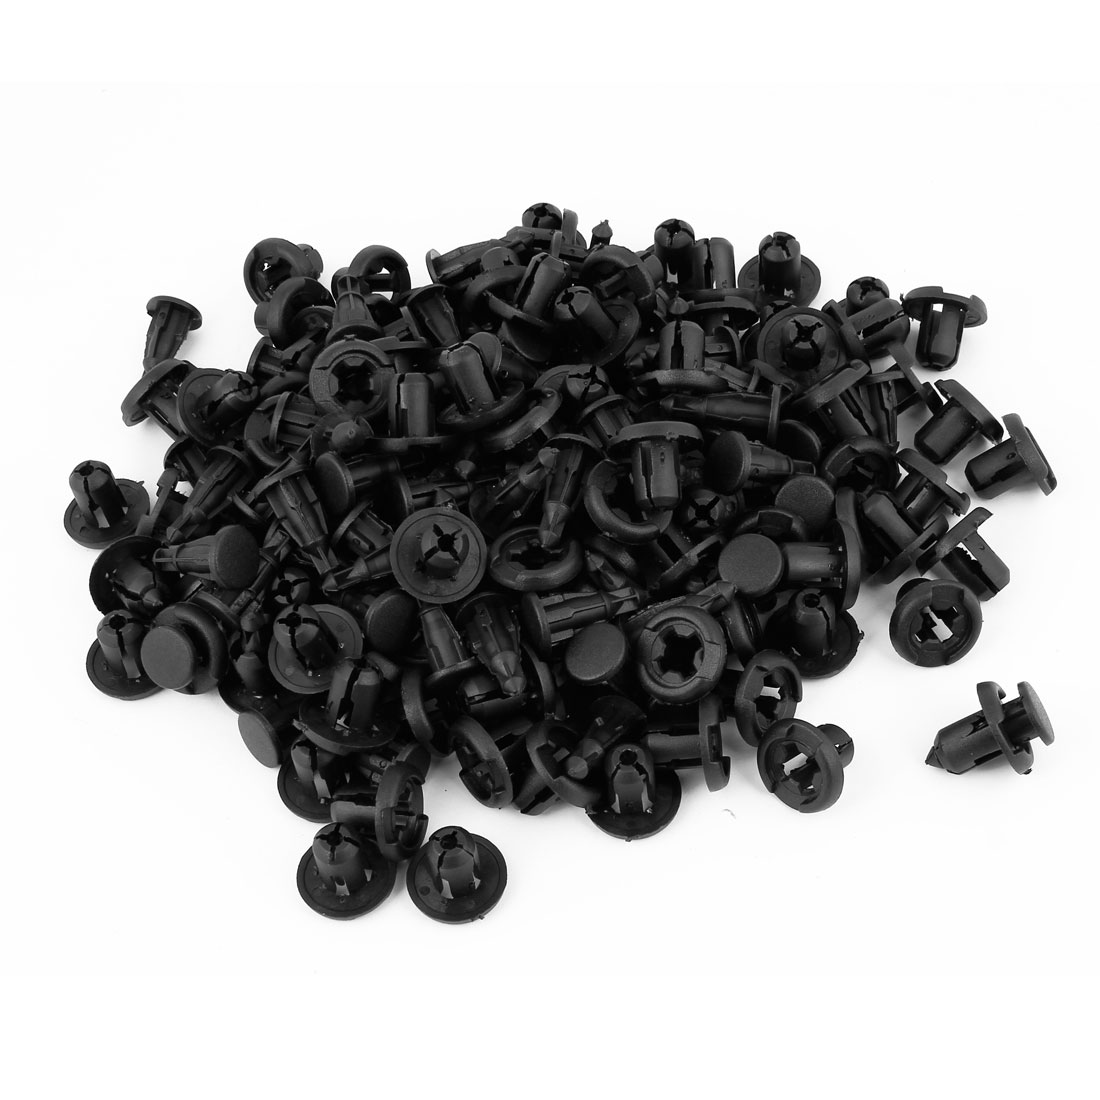 100 Pcs Black Plastic Car Interior Expansion Rivet Trim Liner Push in Panel Clips 10mm Hole Dia